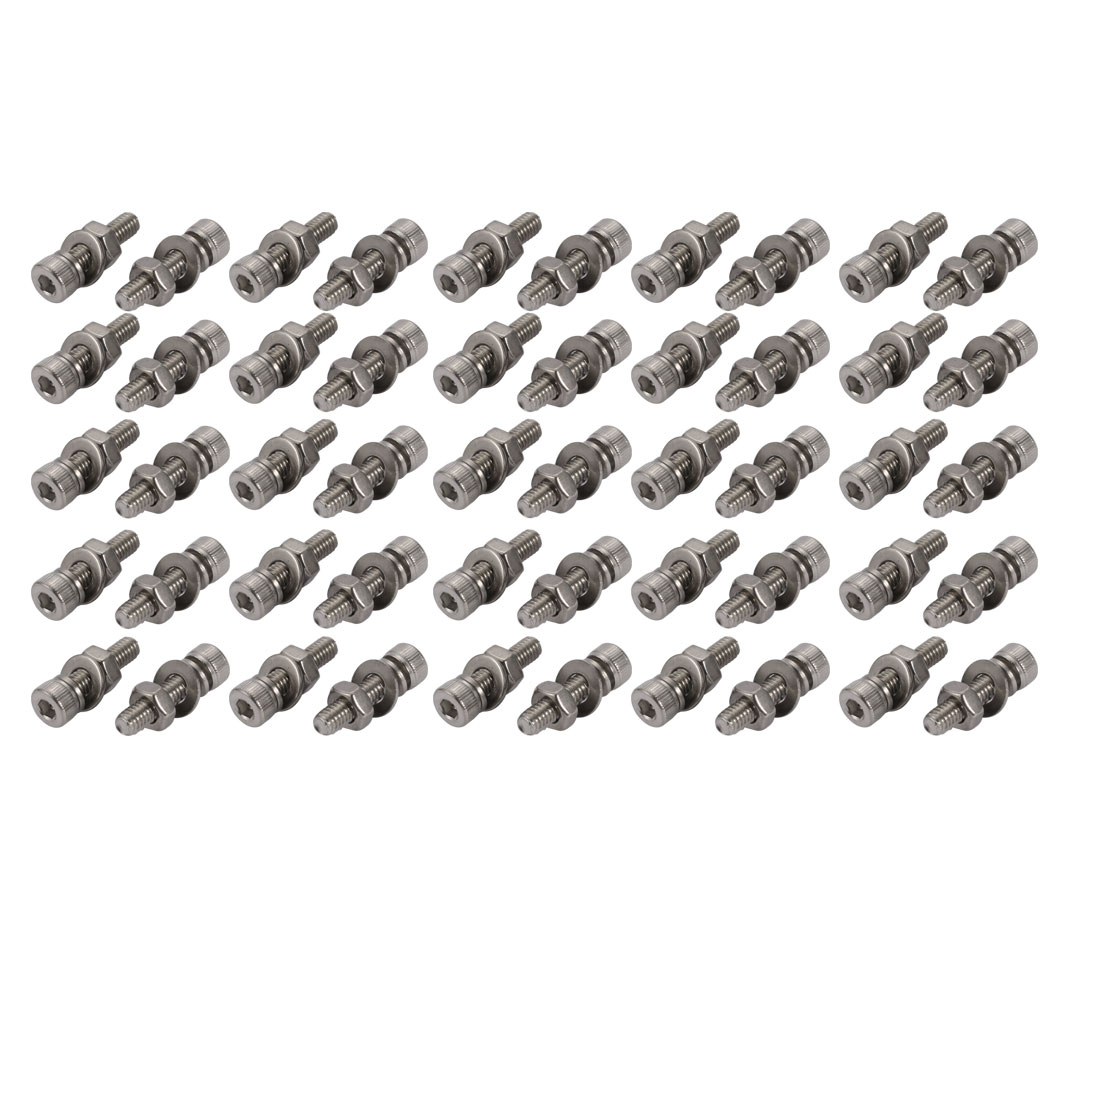 50pcs M4x18mm 304 Stainless Steel Knurled Hex Socket Head Bolts w Nut Washer